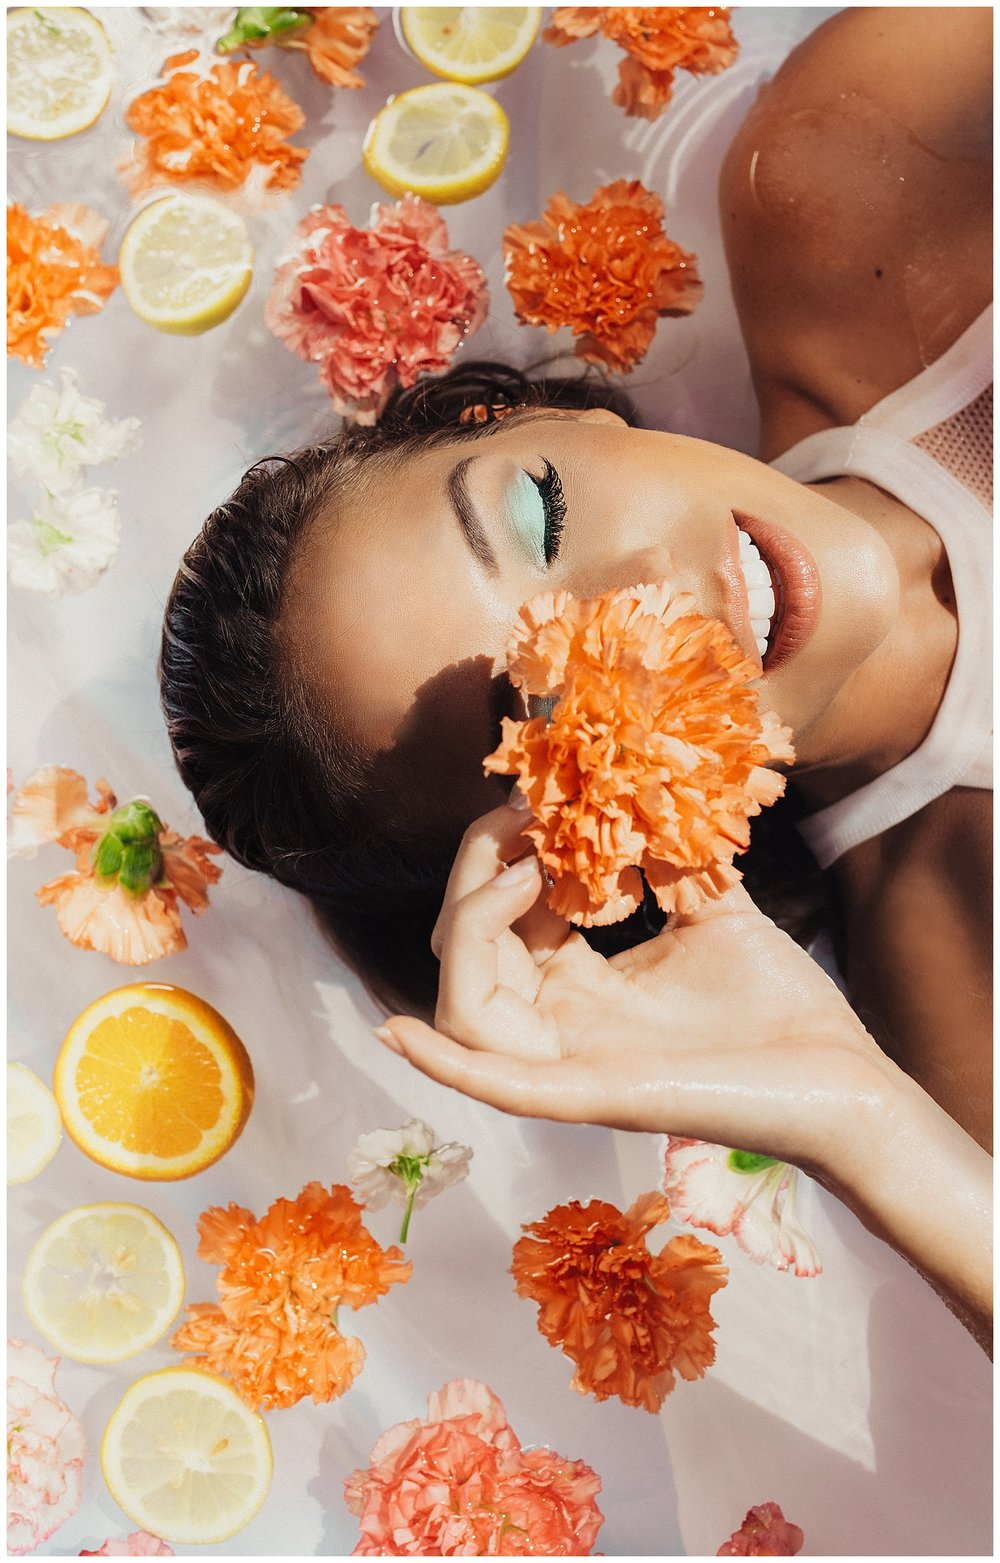 Citrus and Florals Fashion Photography